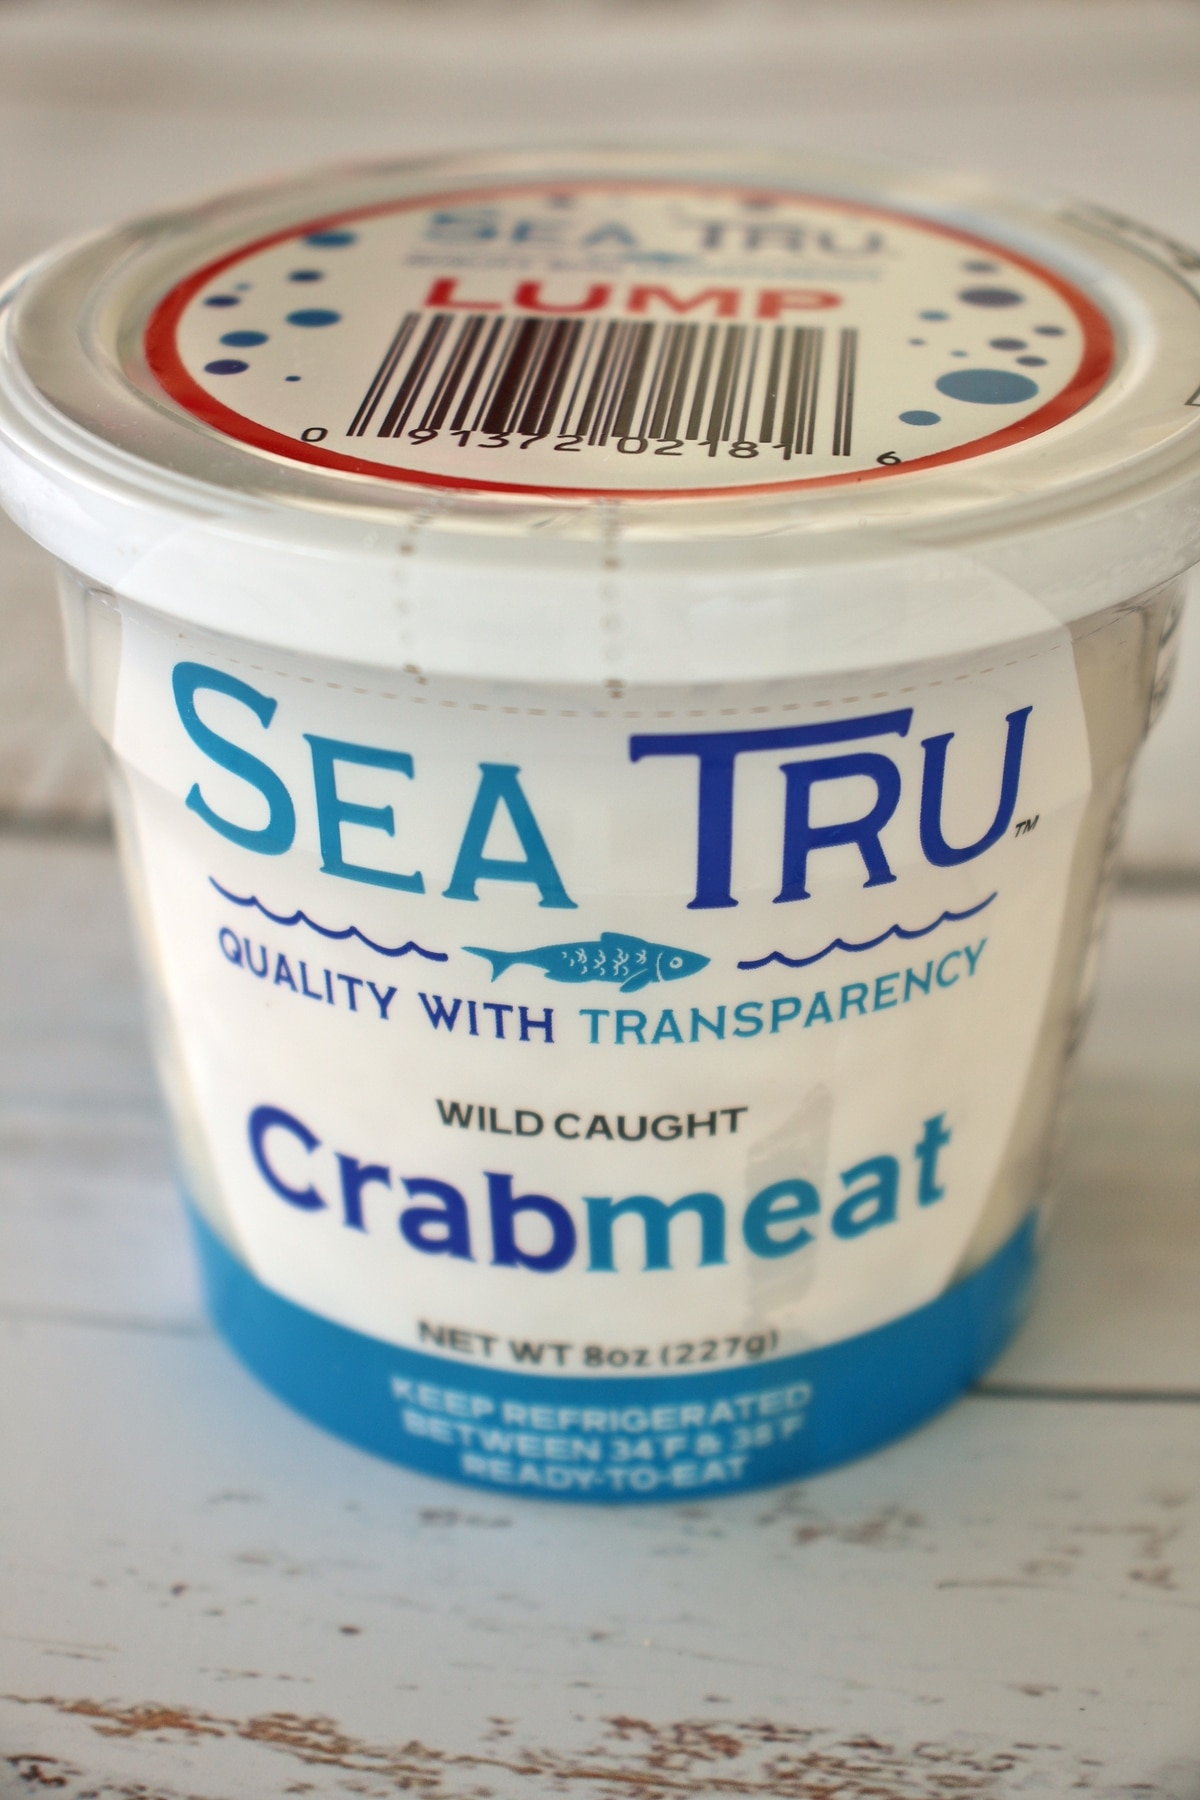 A package of lump crab meat by Sea Tru brand.